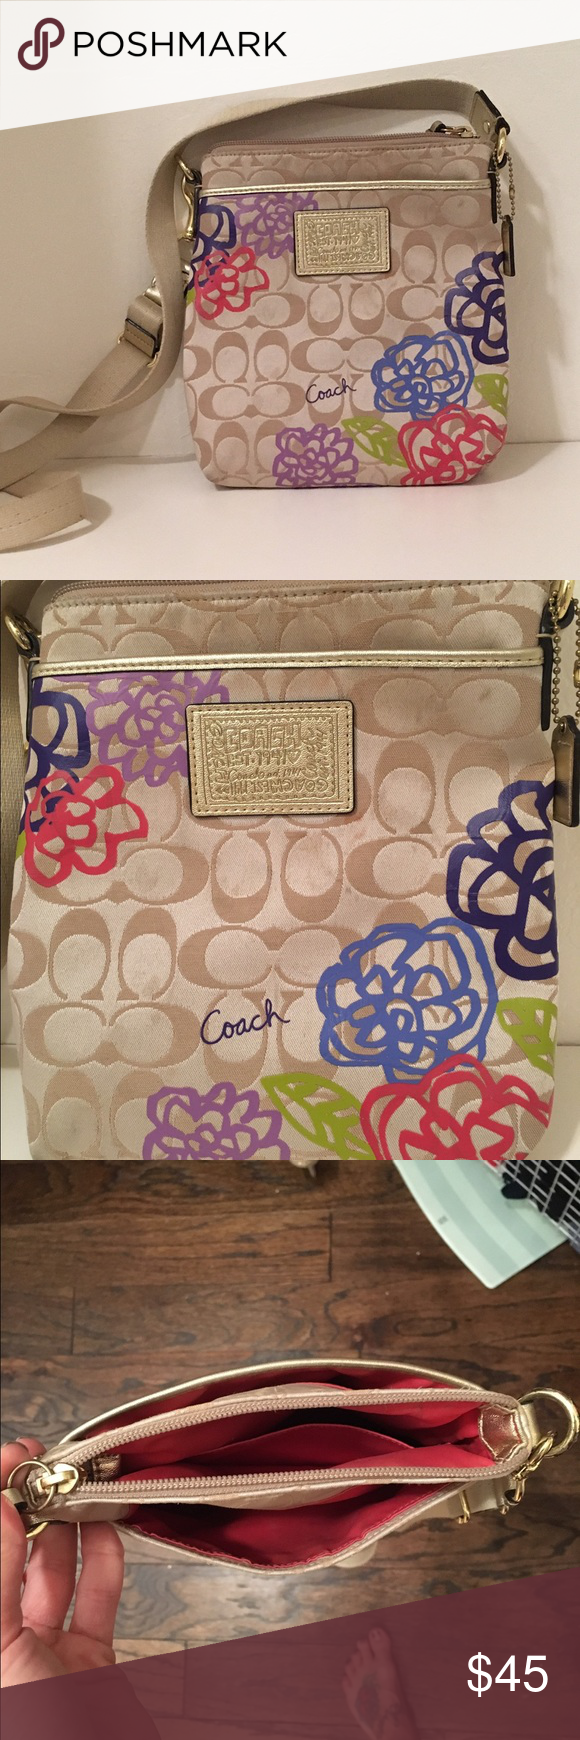 Coach satchel Adorable coach satchel. Some mild signs of wear, but in excellent condition as it was used very few times. 3 compartments with a small little side pocket on the inside for keys, cards etc.... Coach Bags